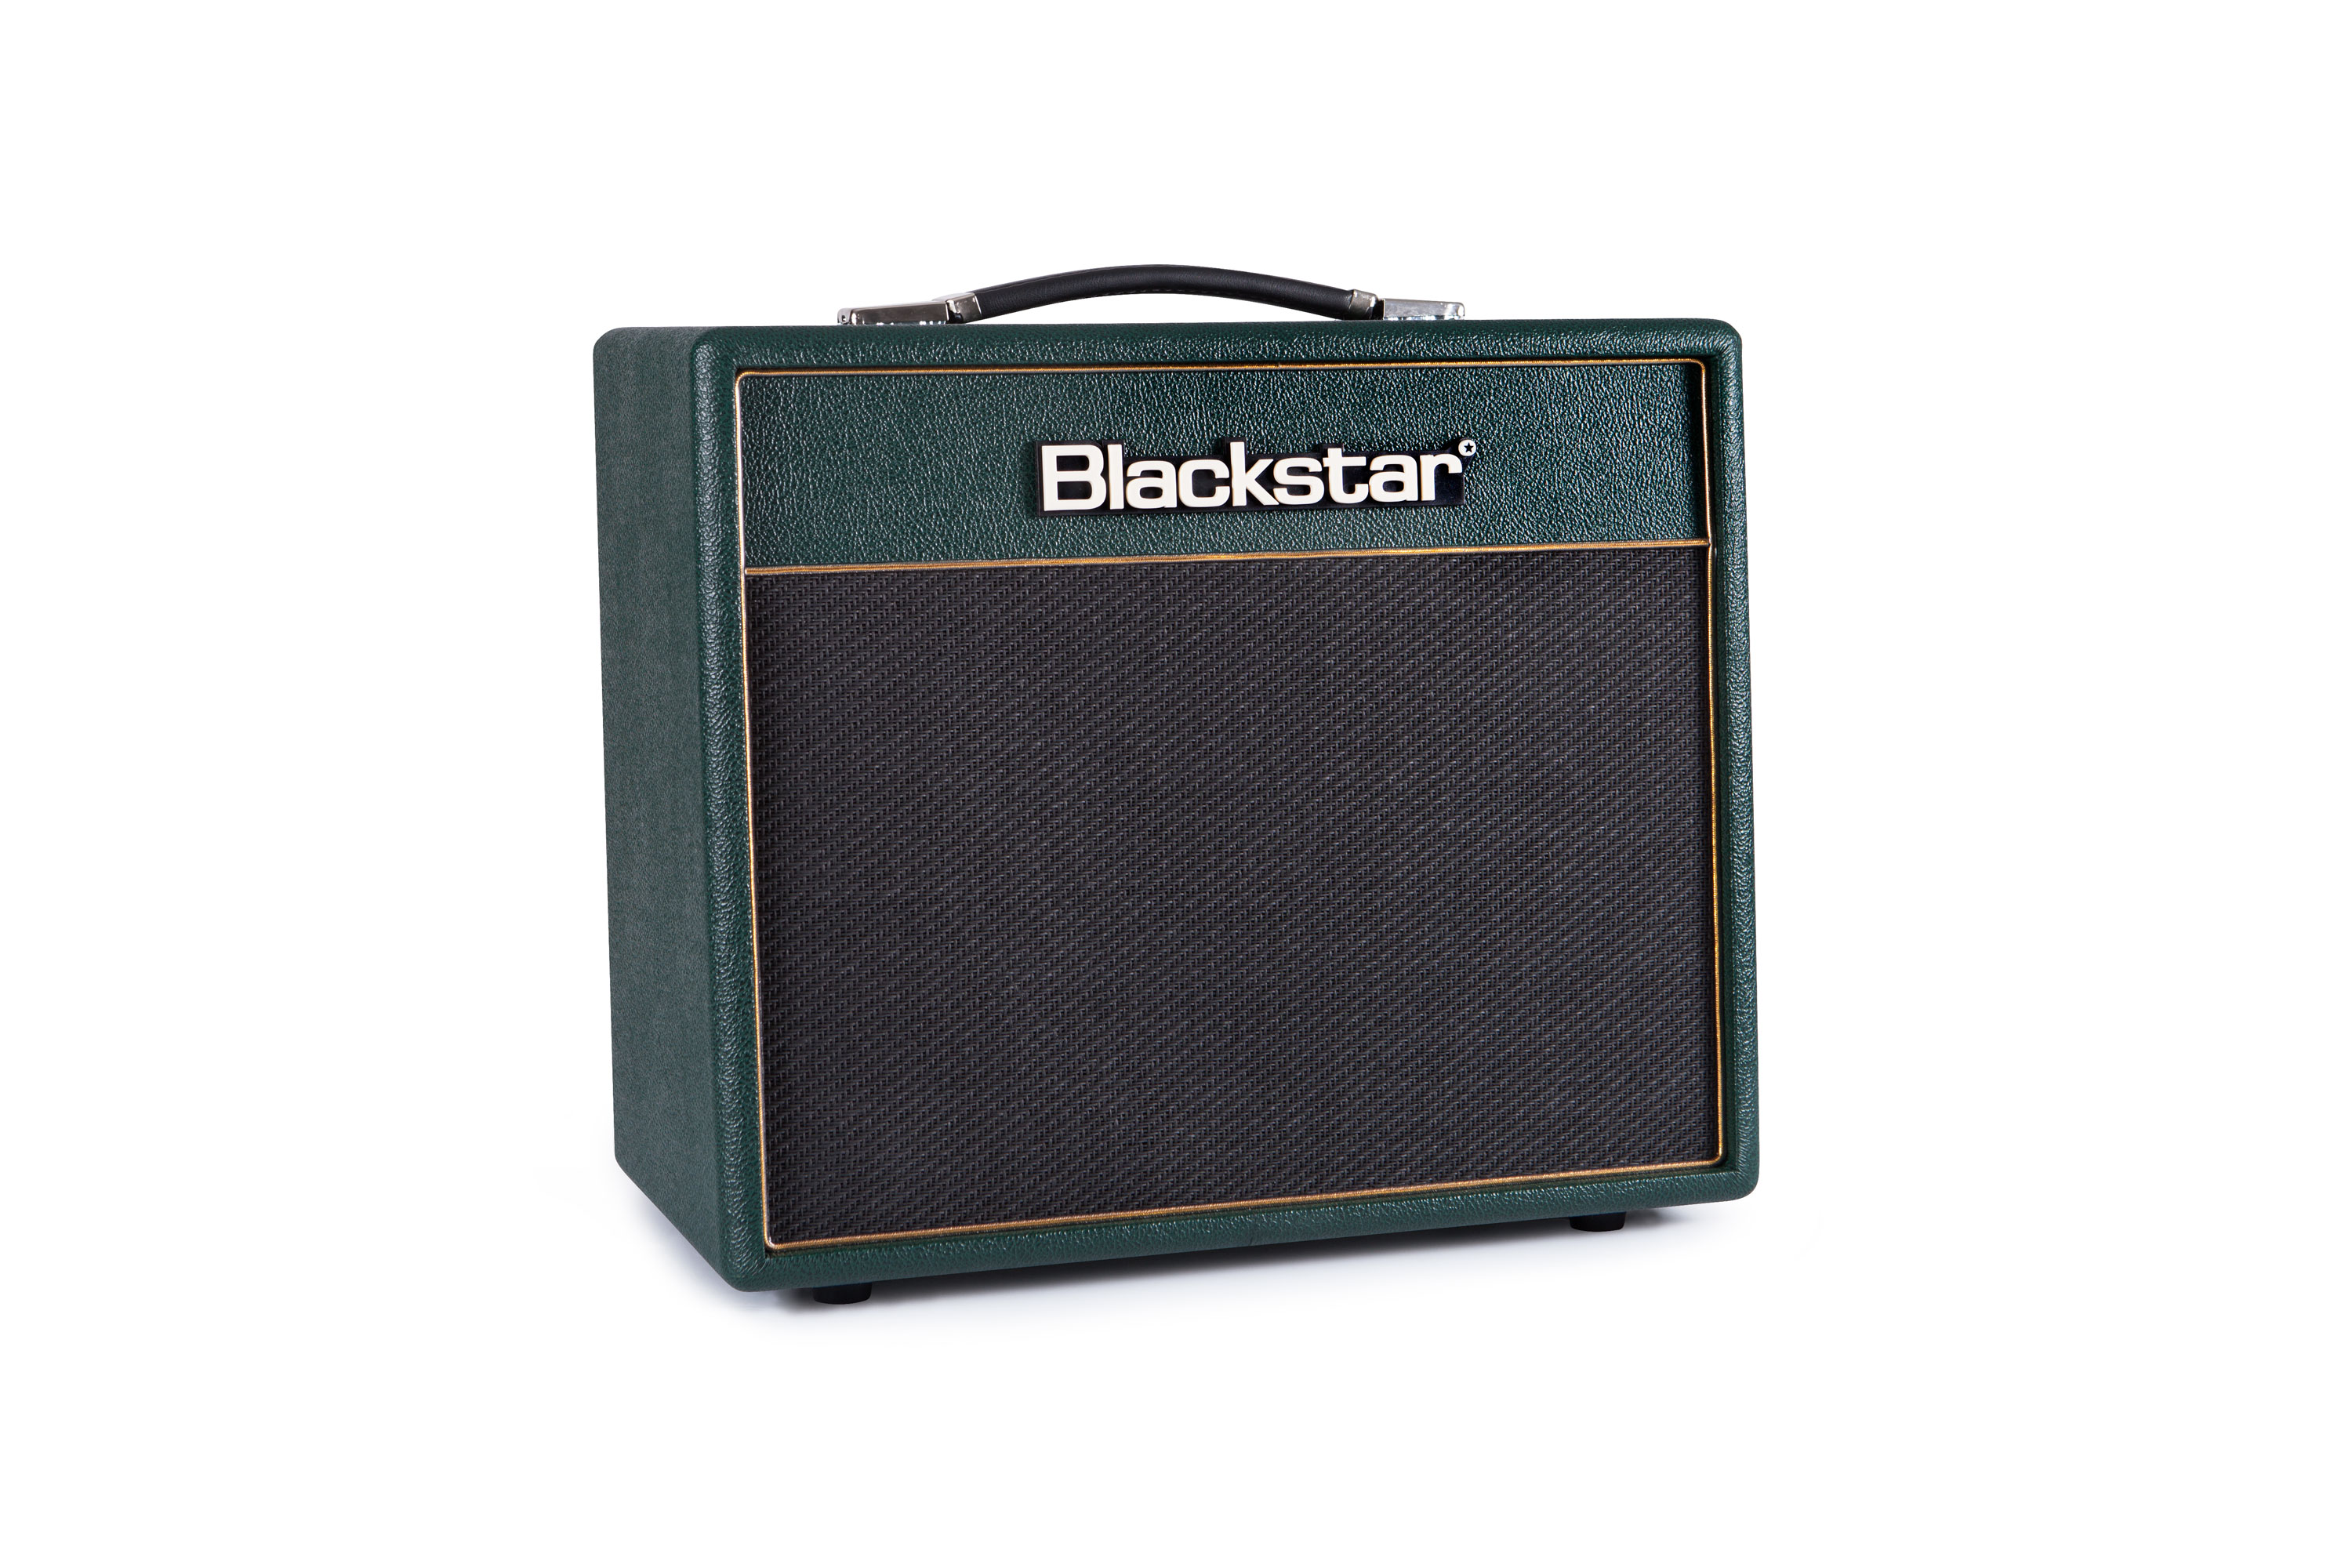 BLACKSTAR STUDIO 10 KT88 EMERALD BRONCO LTD